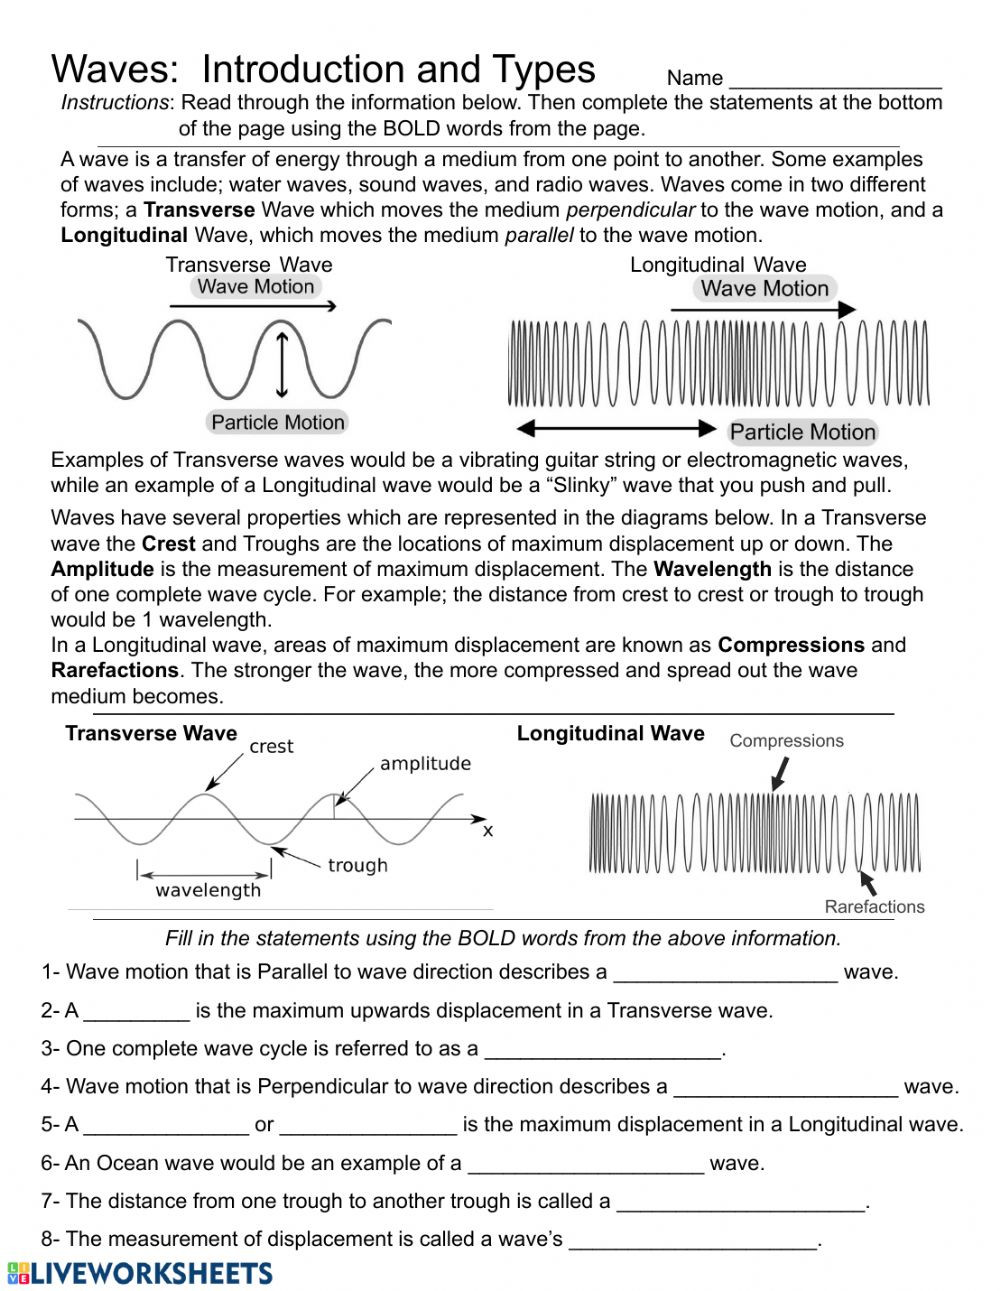 Waves Worksheet 1 Answers Waves Introduction and Types Interactive Worksheet